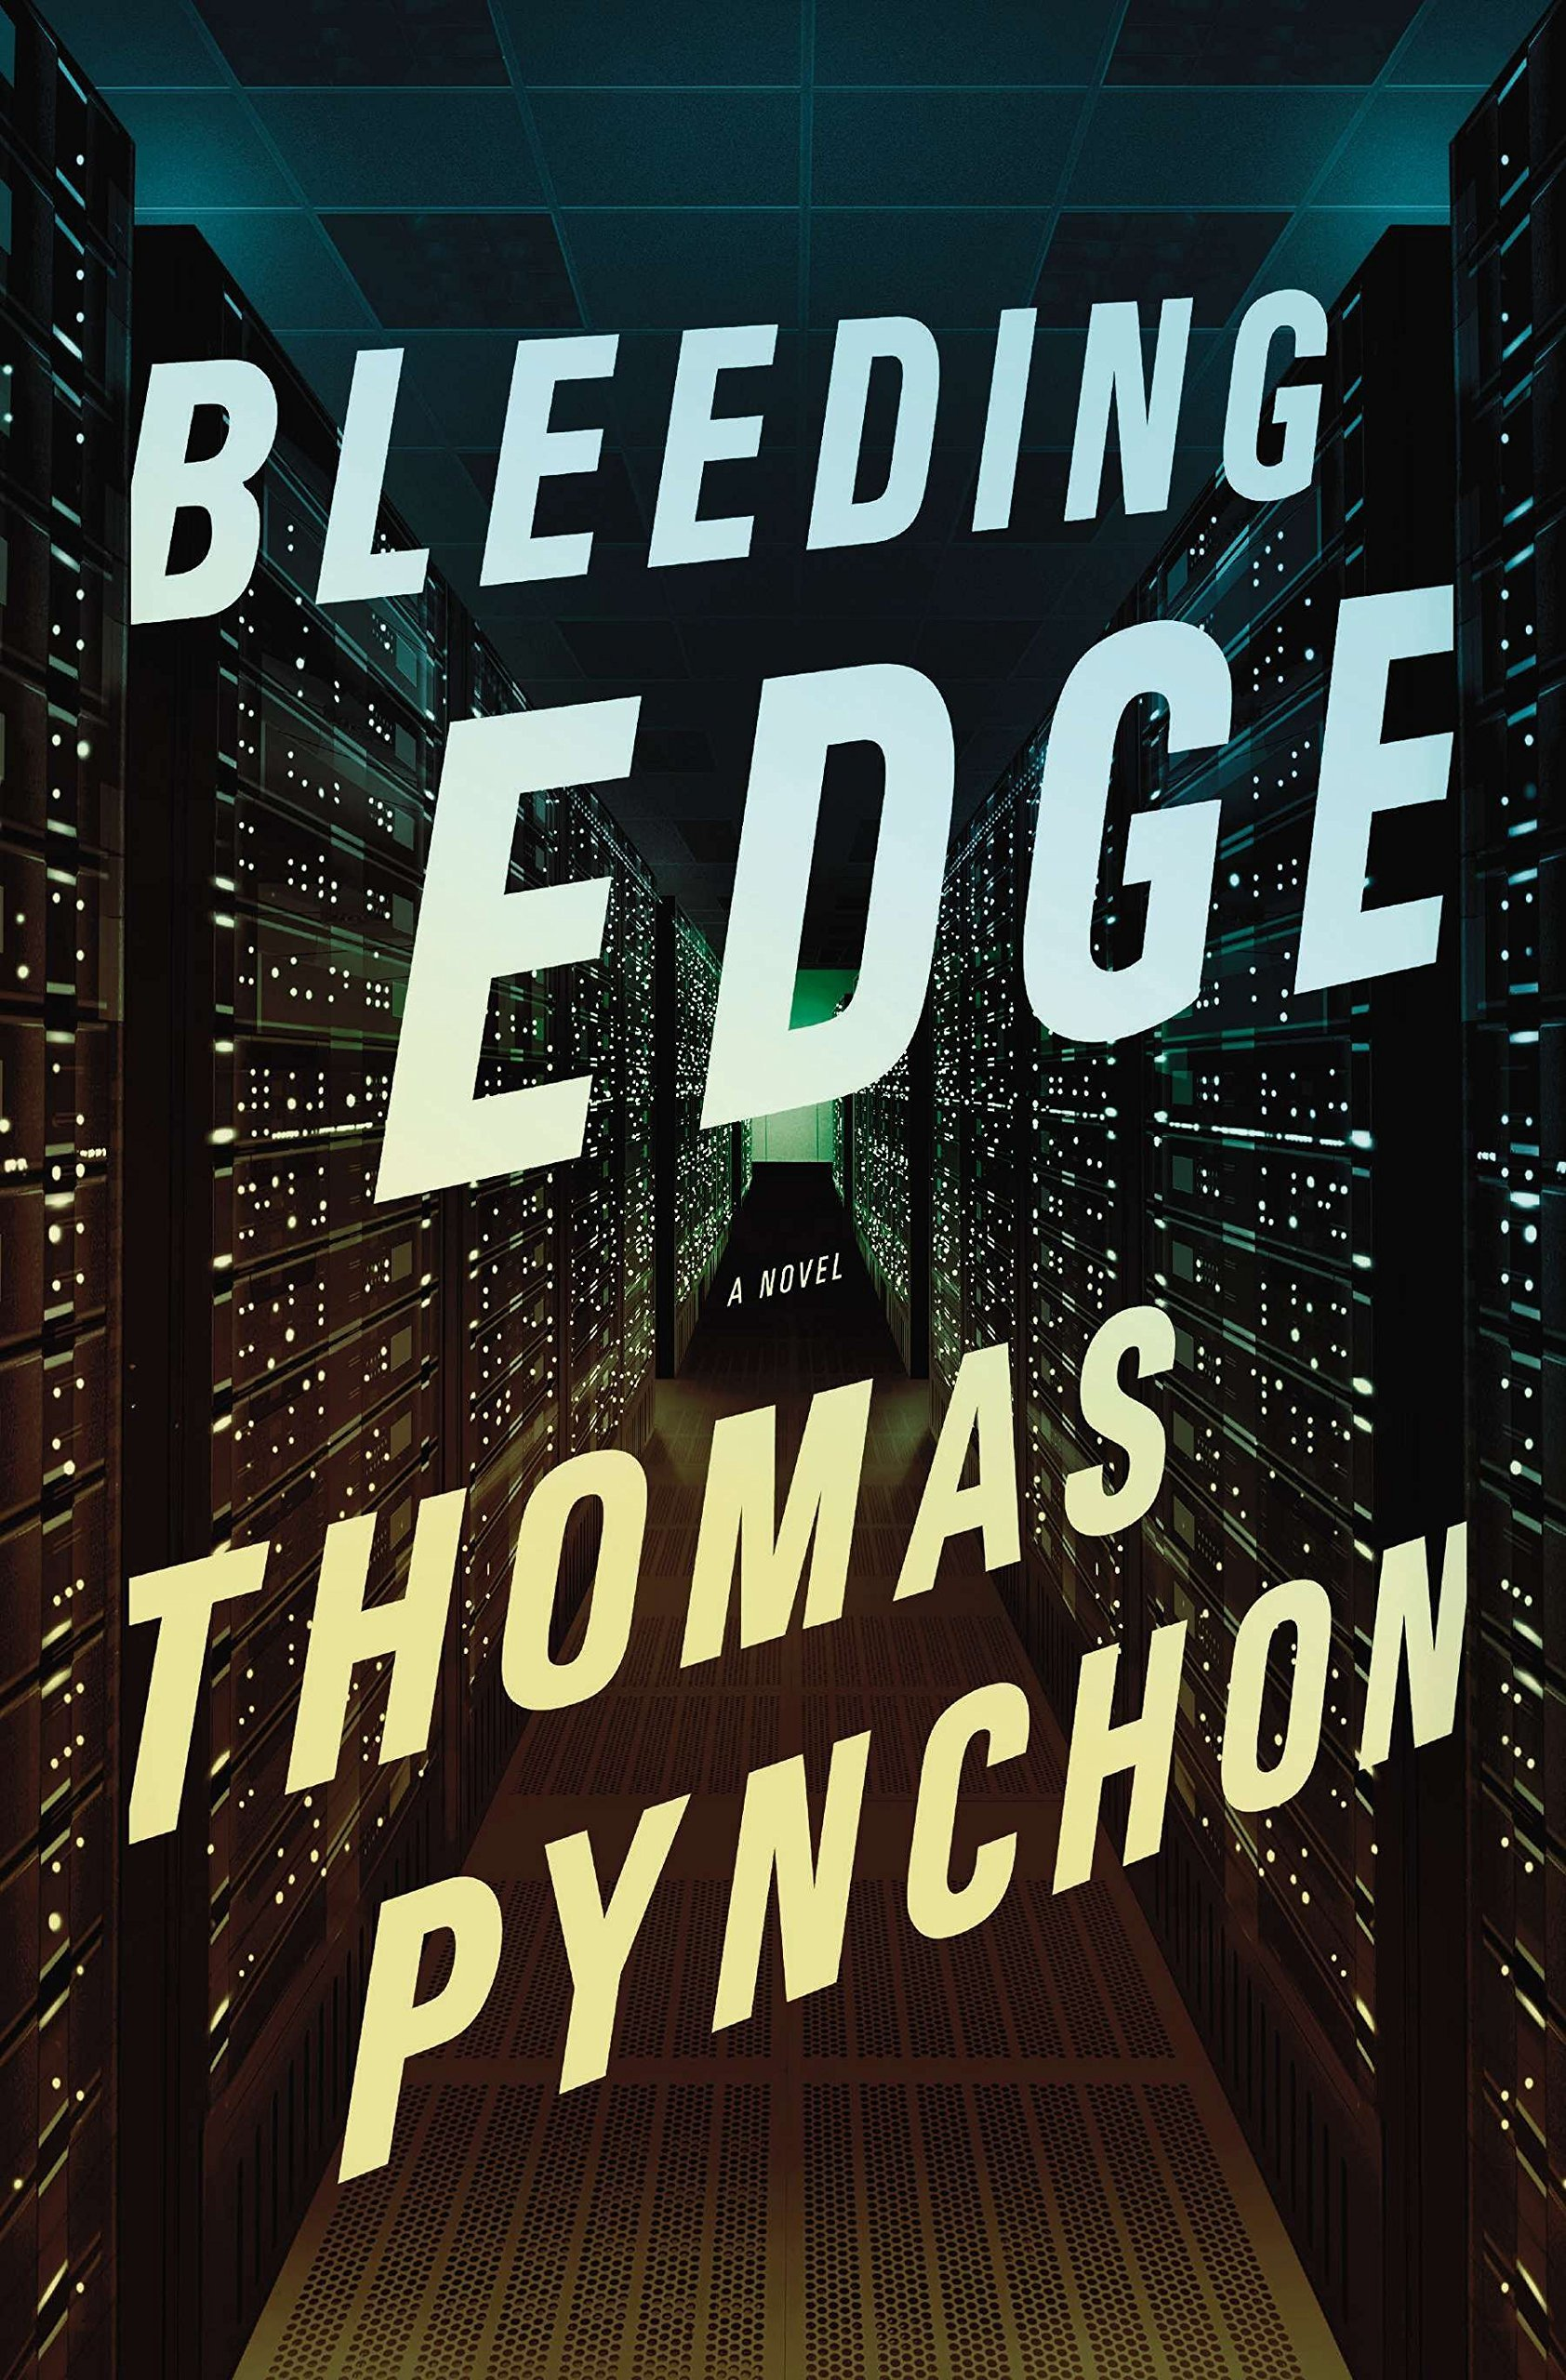 A Tangle of Underworlds: Thomas Pynchon's Bleeding Edge